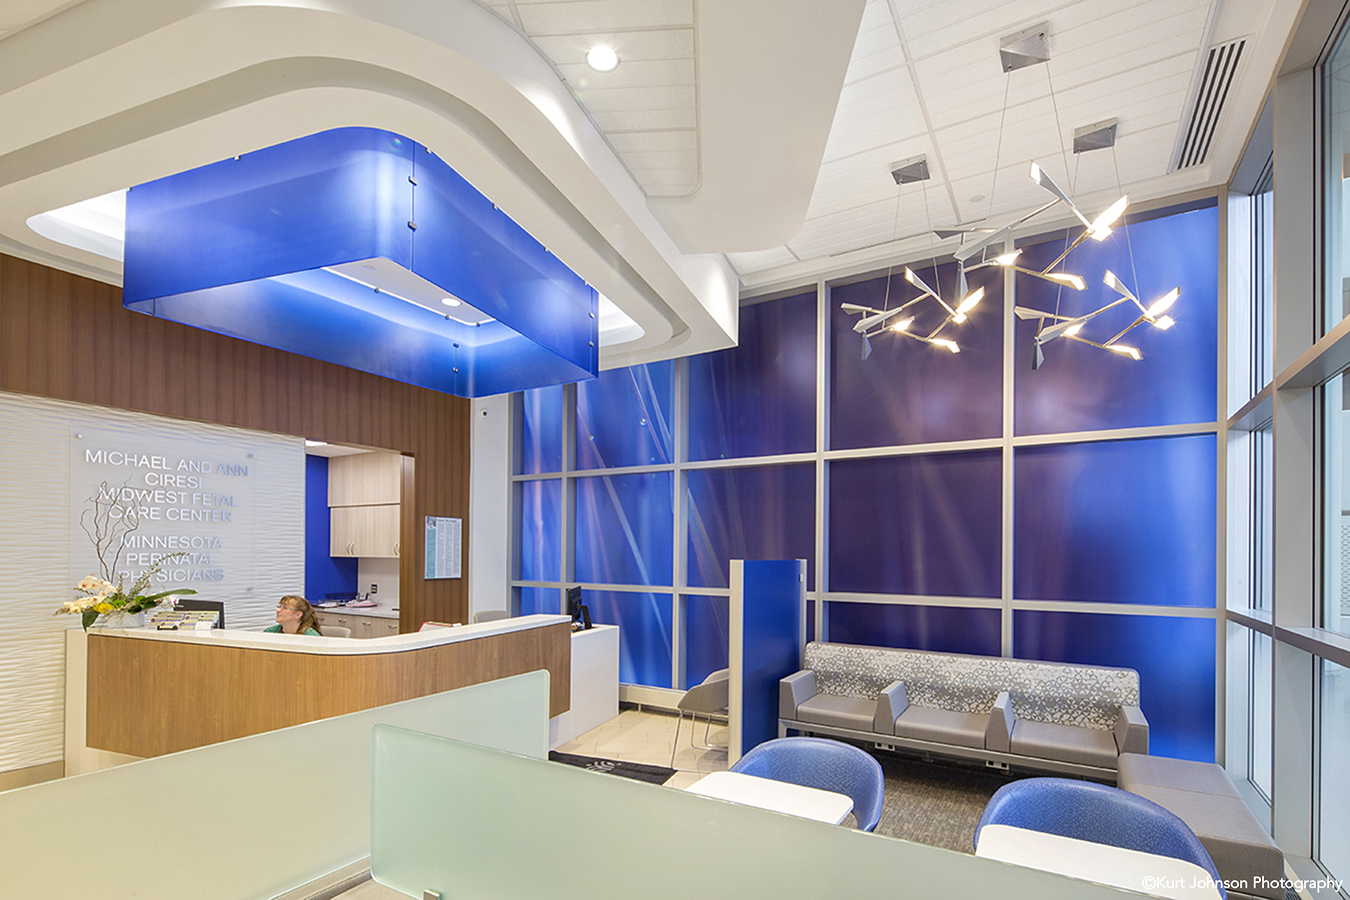 Install-film-glass-art-Midwest Fetal Care Clinic-MN-HDR Minnesota